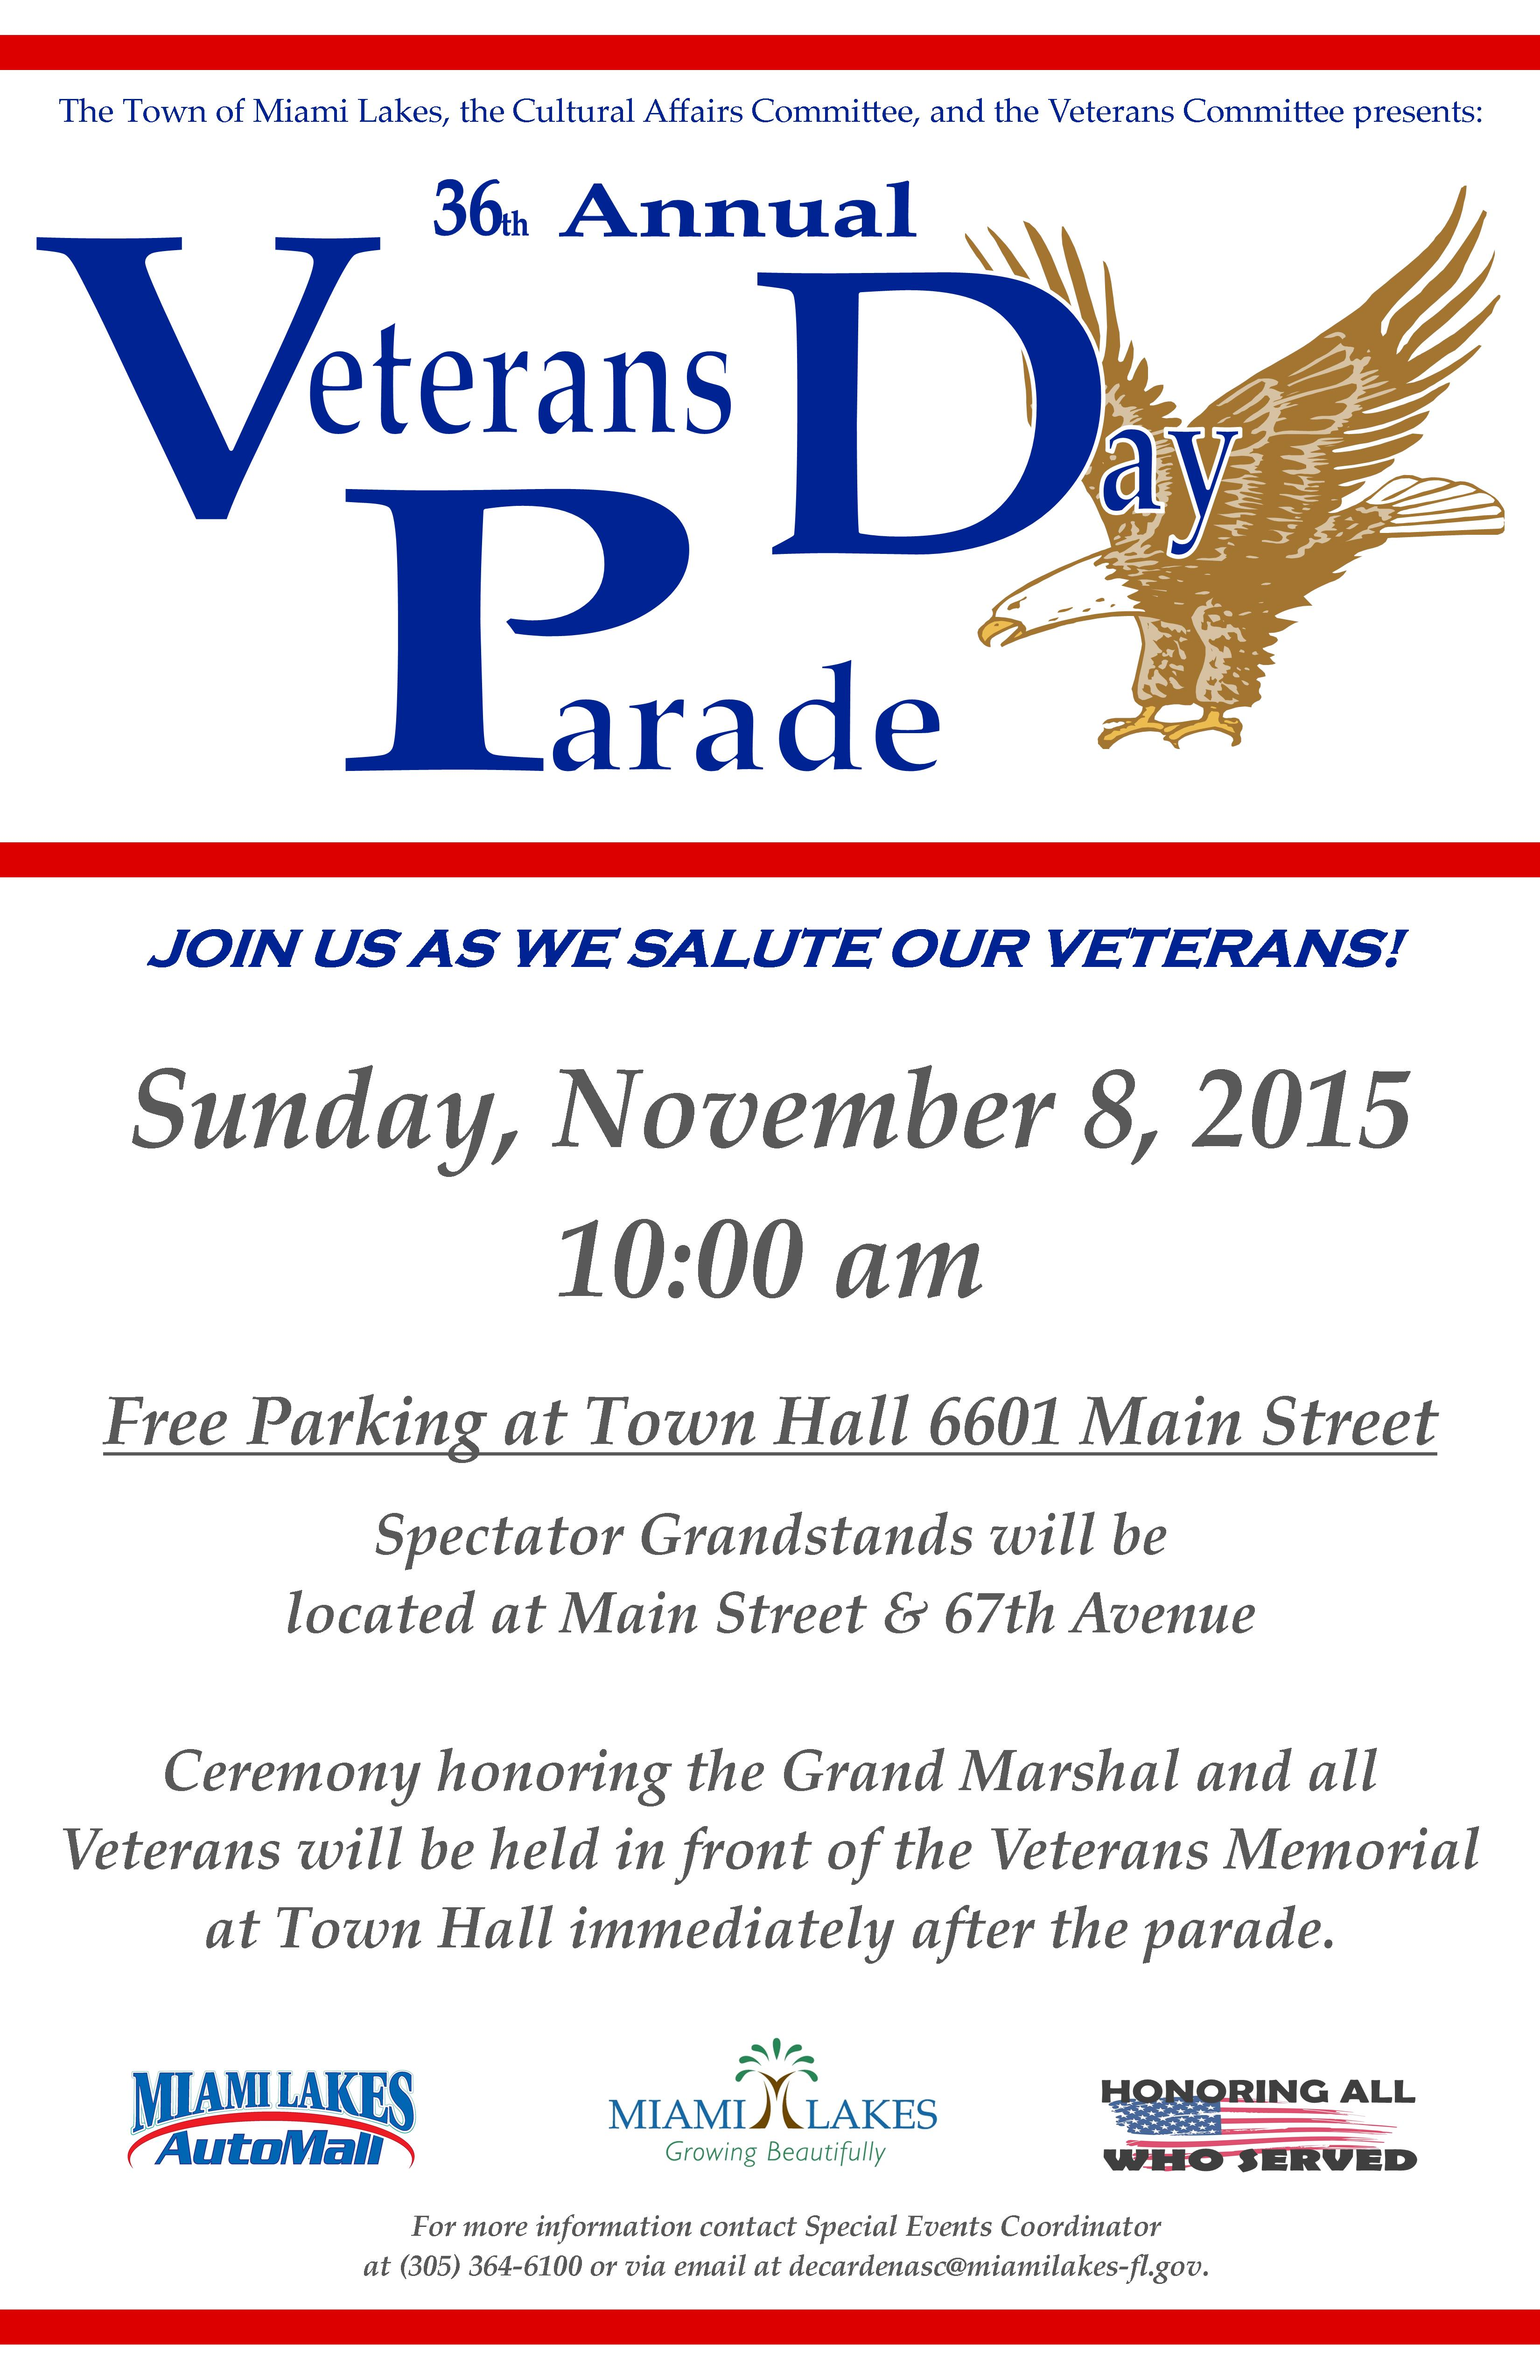 Veterans Day Parade Flyer 2015